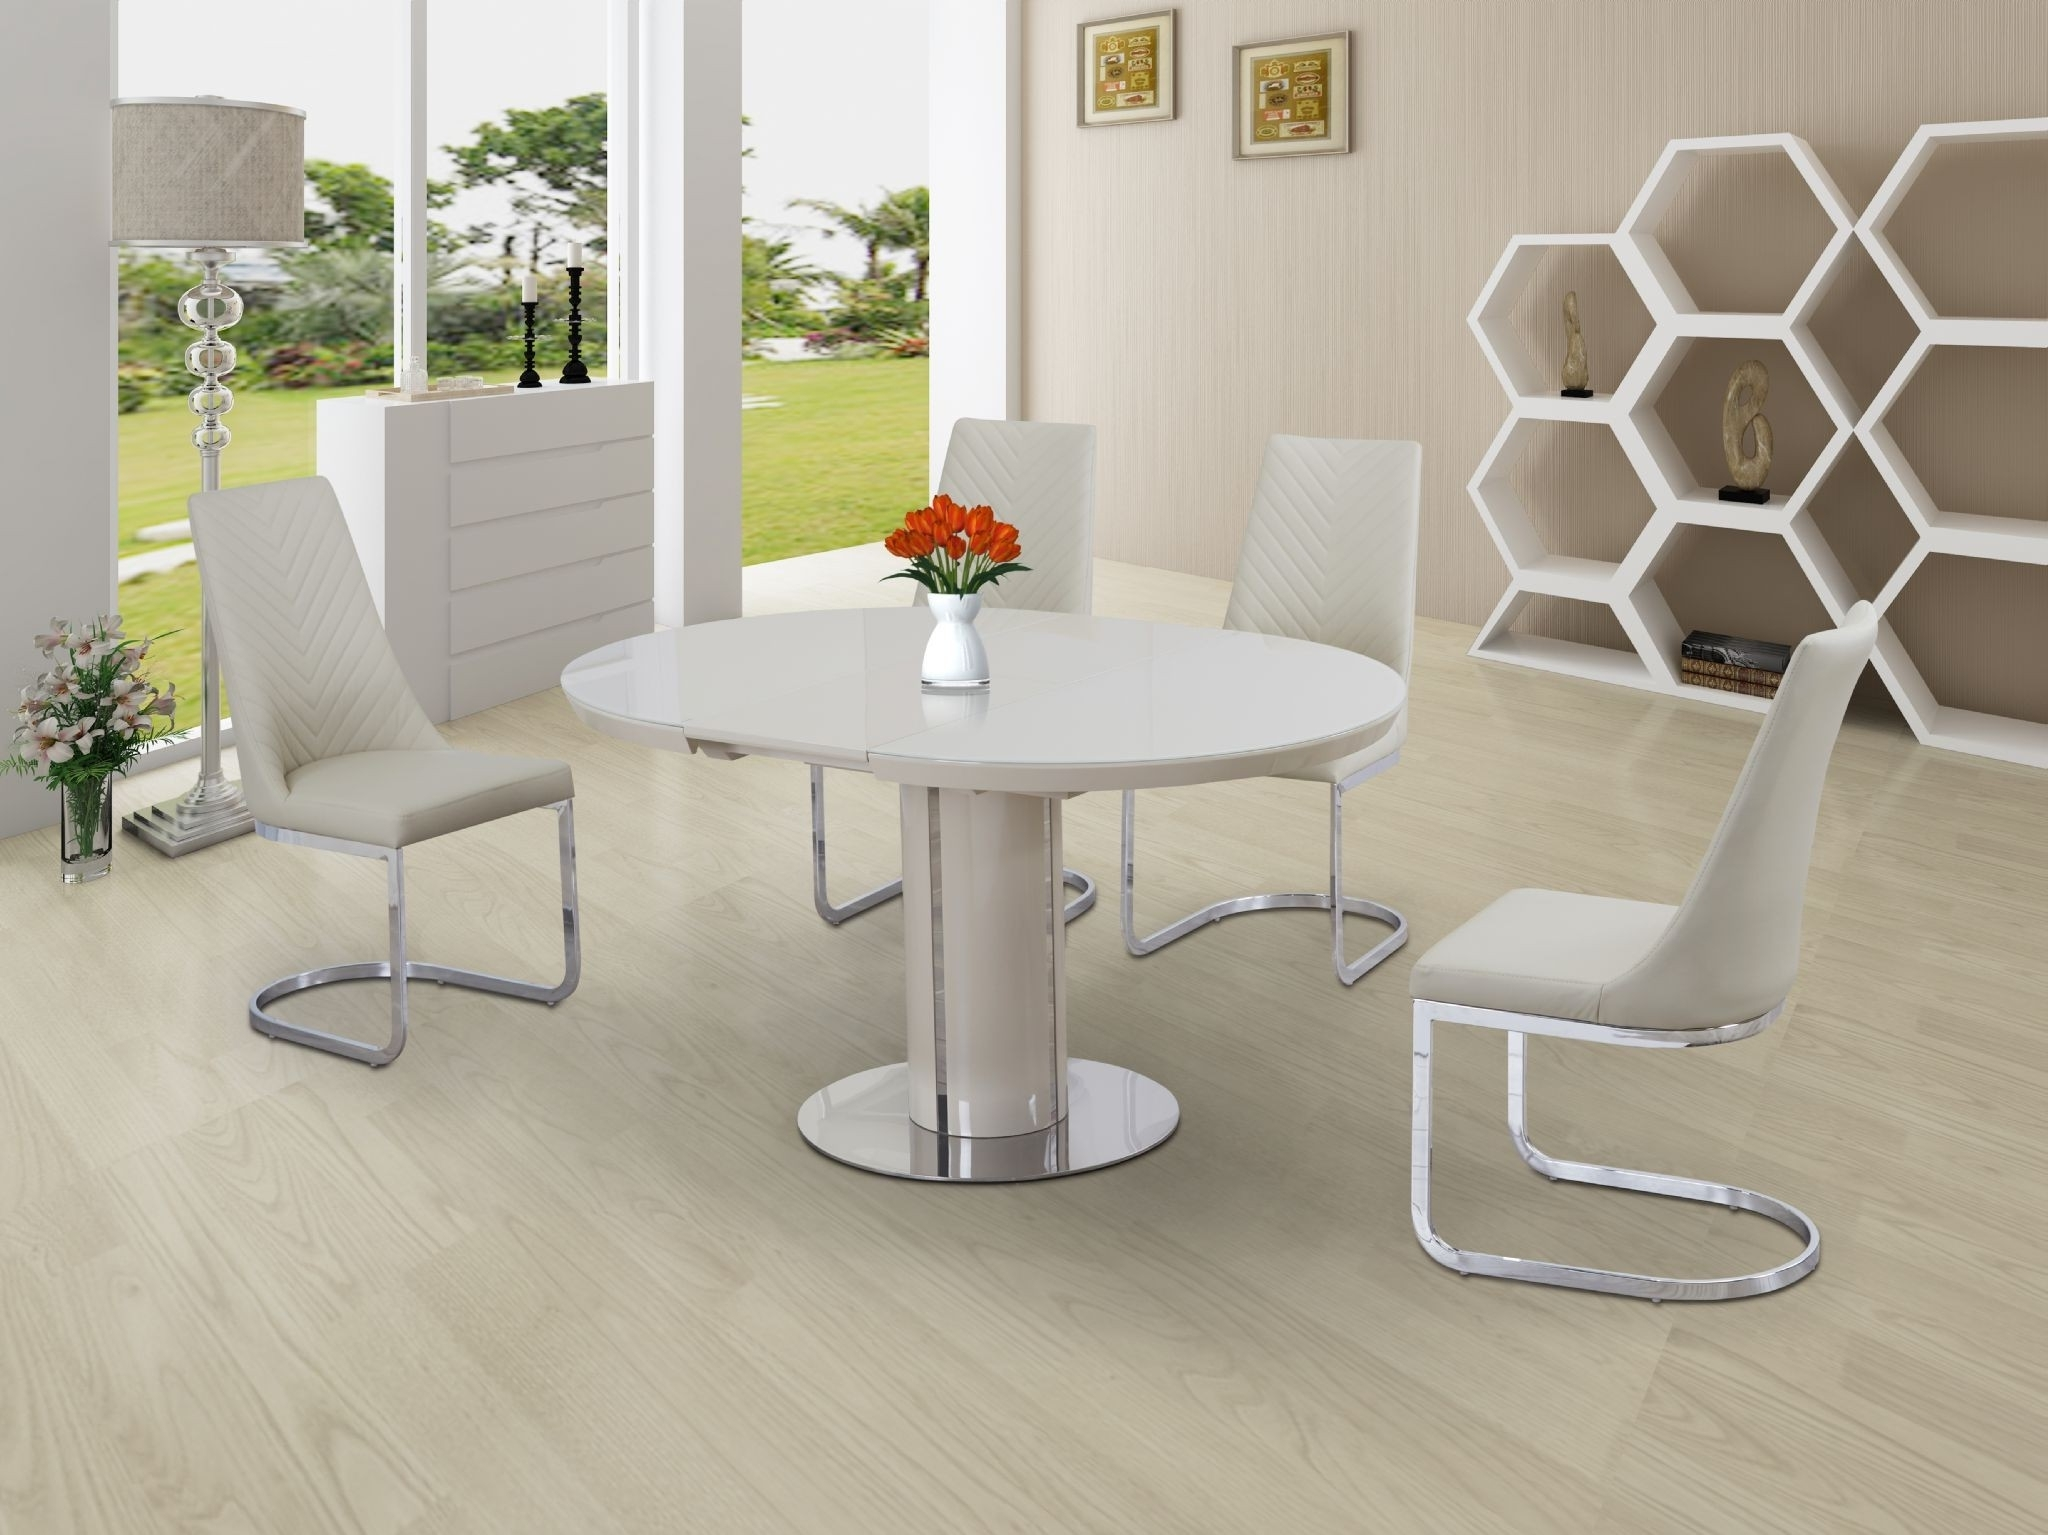 Most Up To Date Hi Gloss Dining Tables Sets Intended For Annular Round Cream Extending High Gloss Dining Table (View 9 of 25)